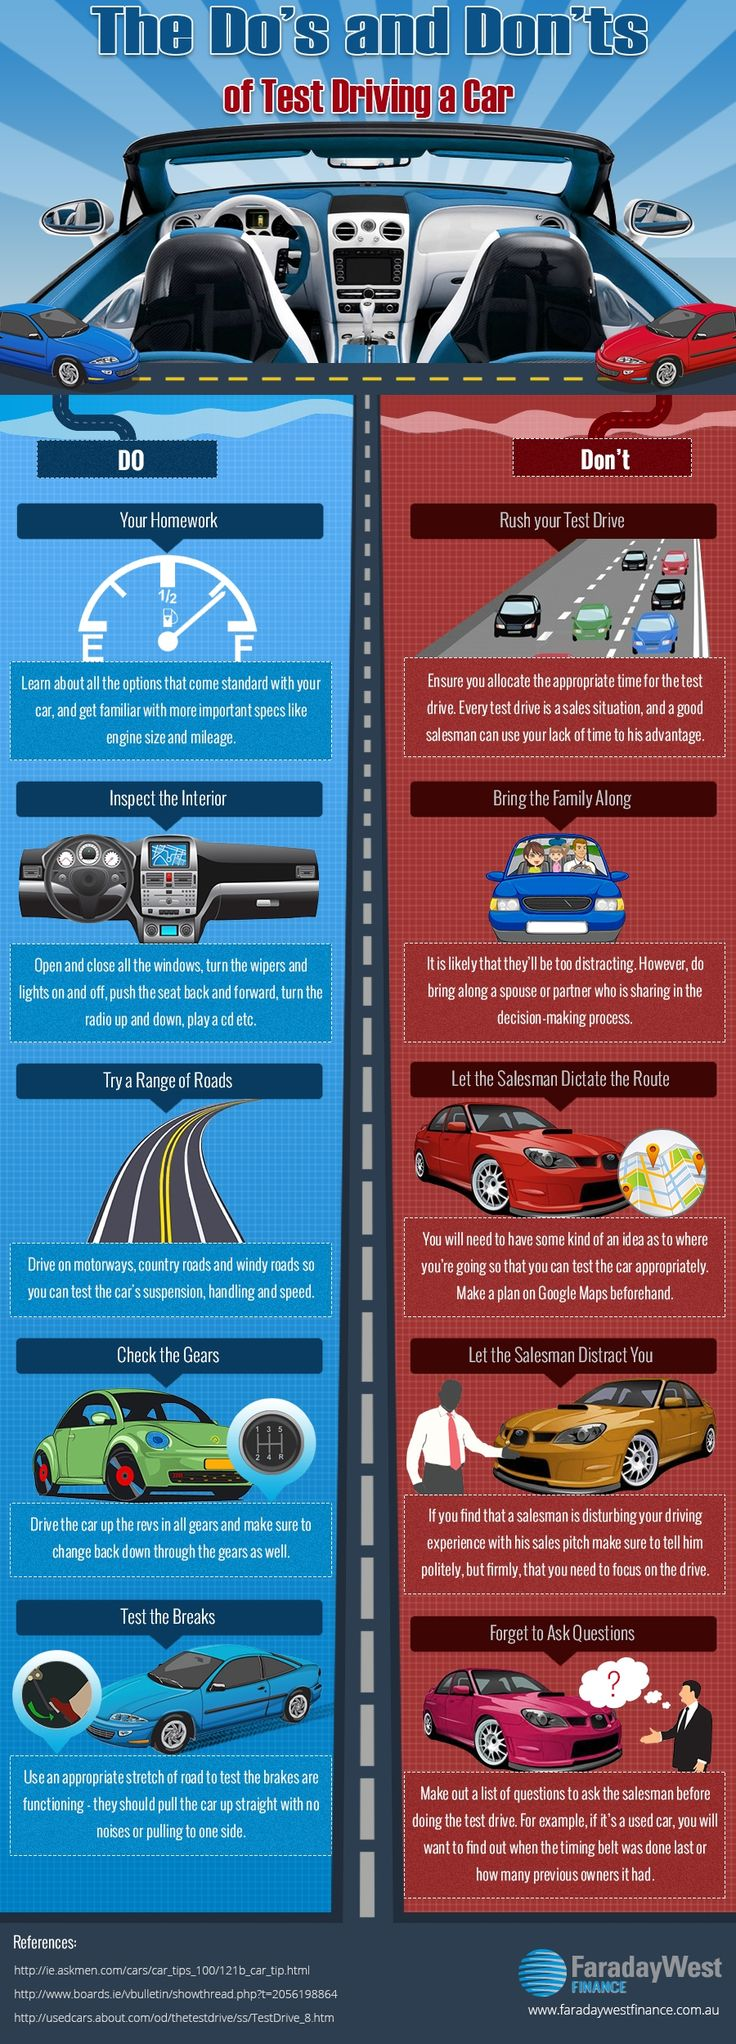 379 best My Wheels images on Pinterest | Car hacks, Driving safety ...